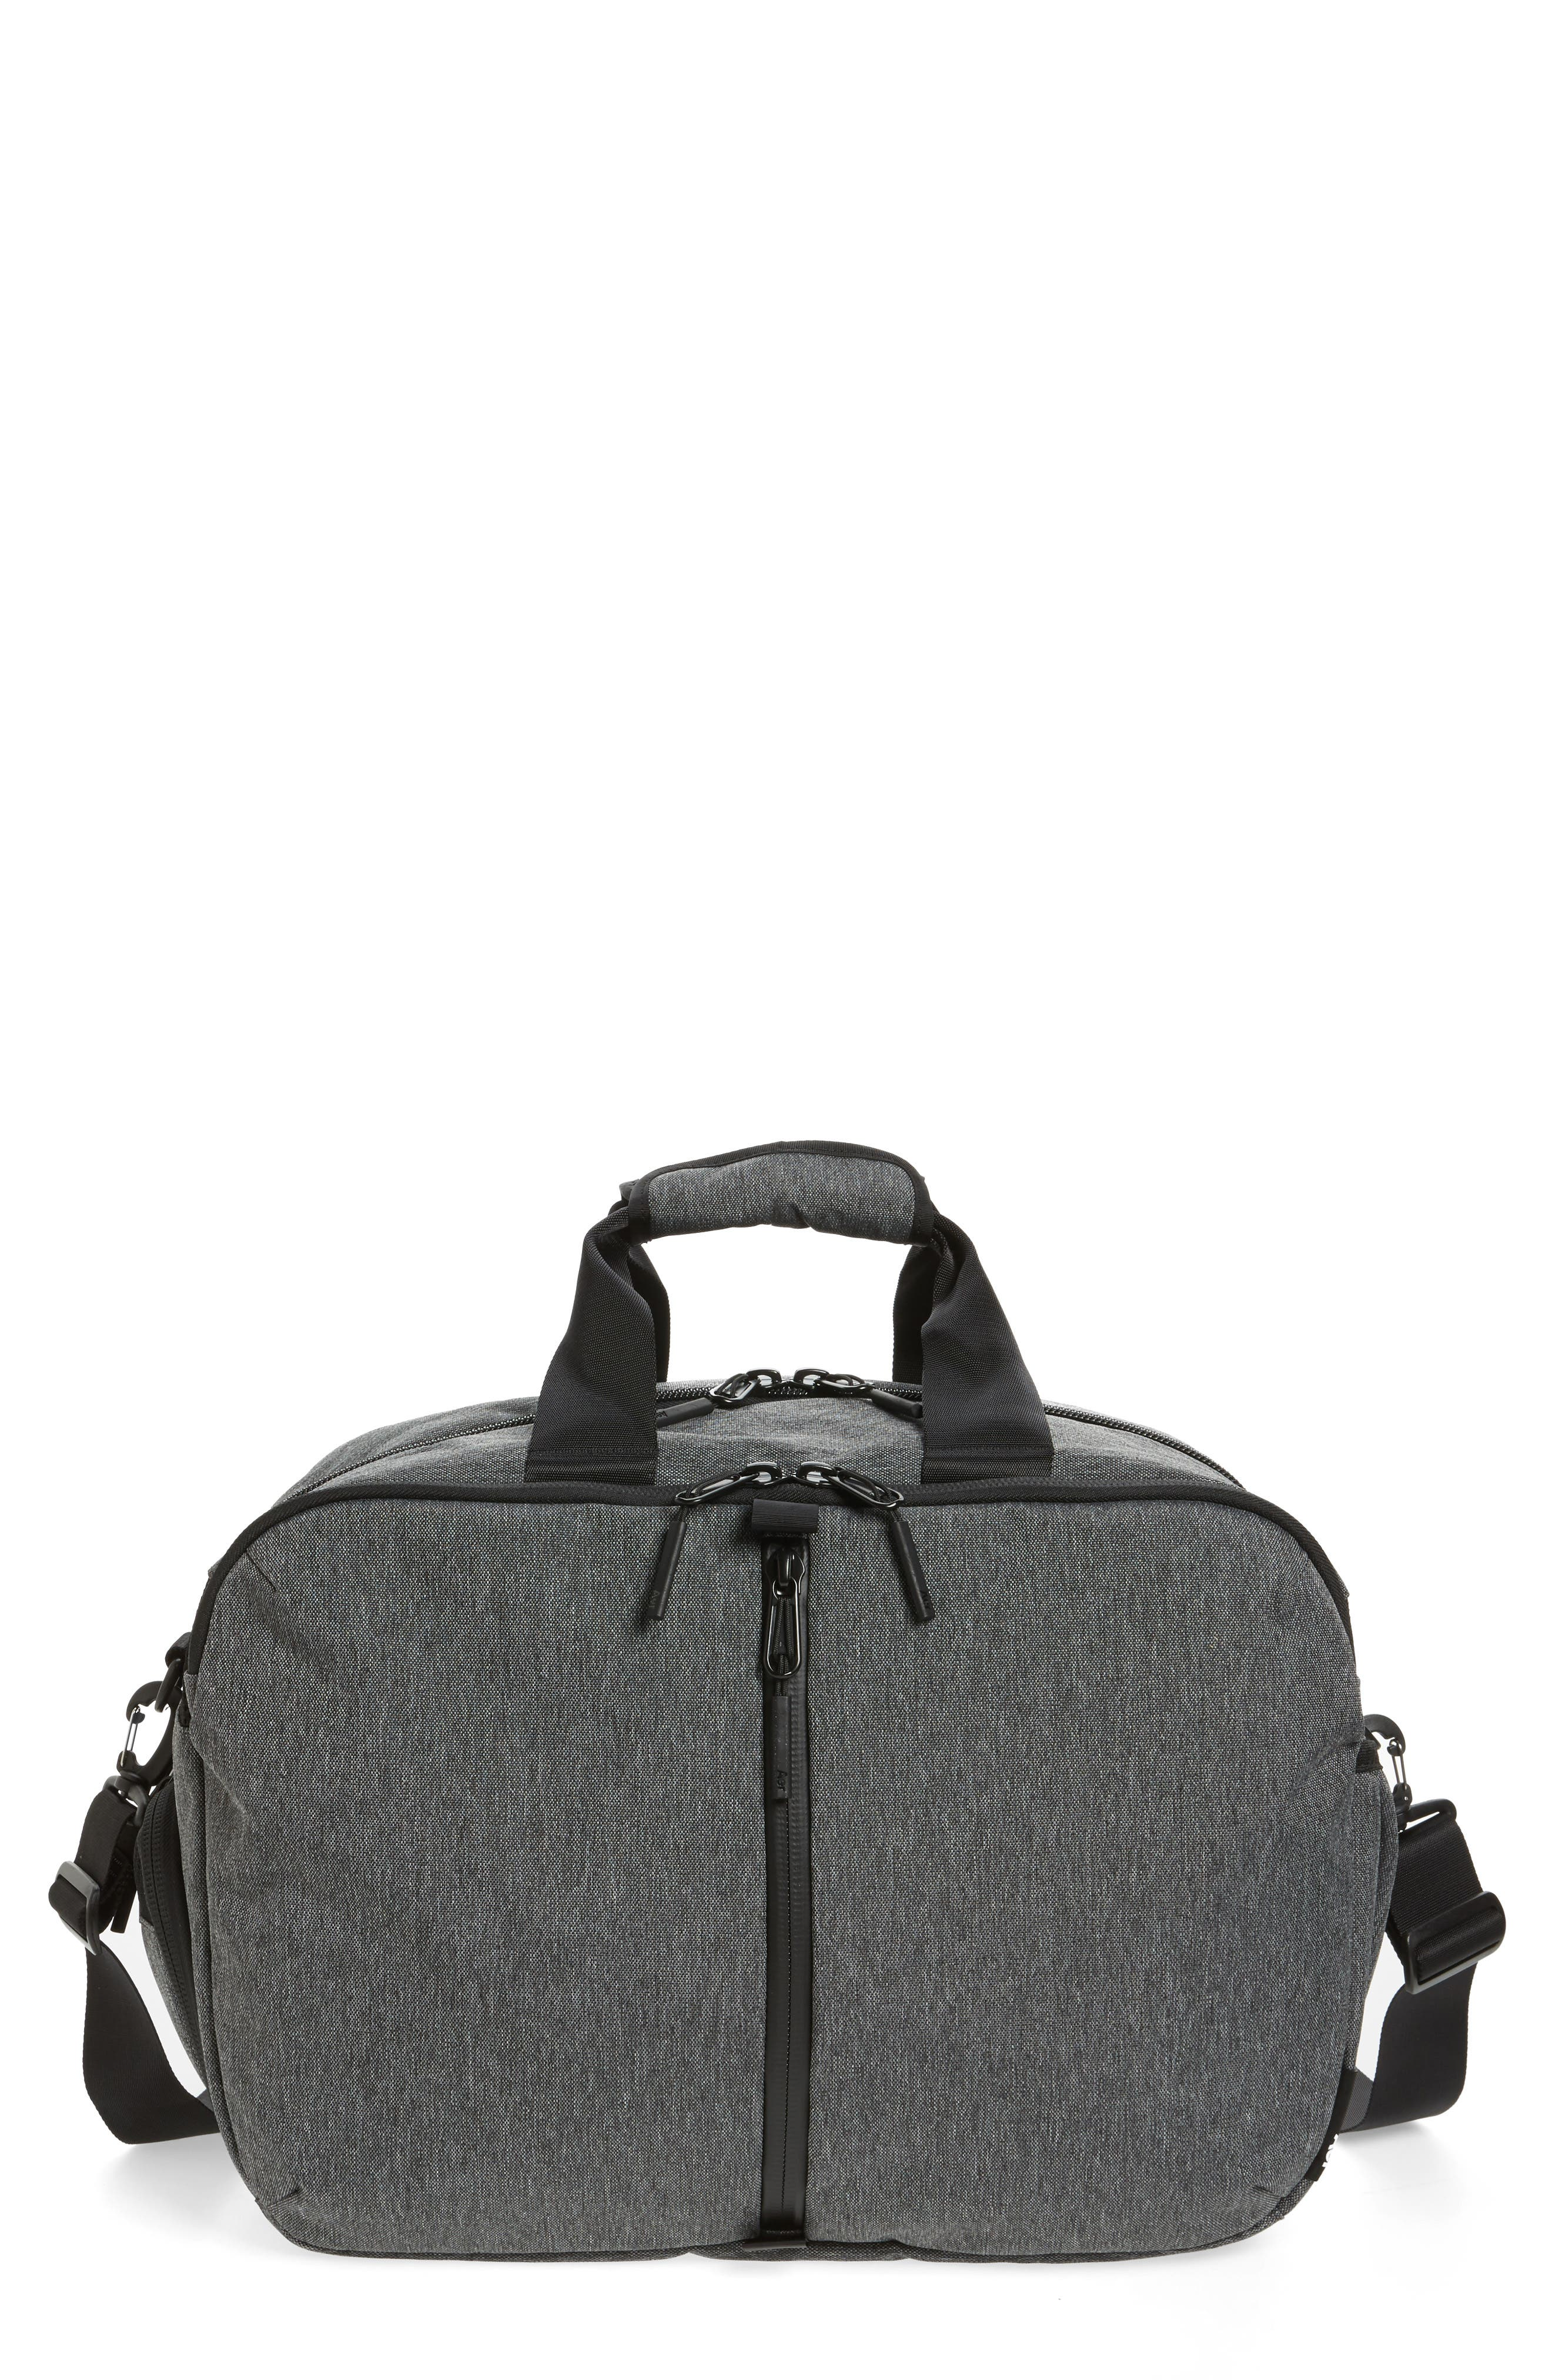 Aer Gym Duffel 2 Bag